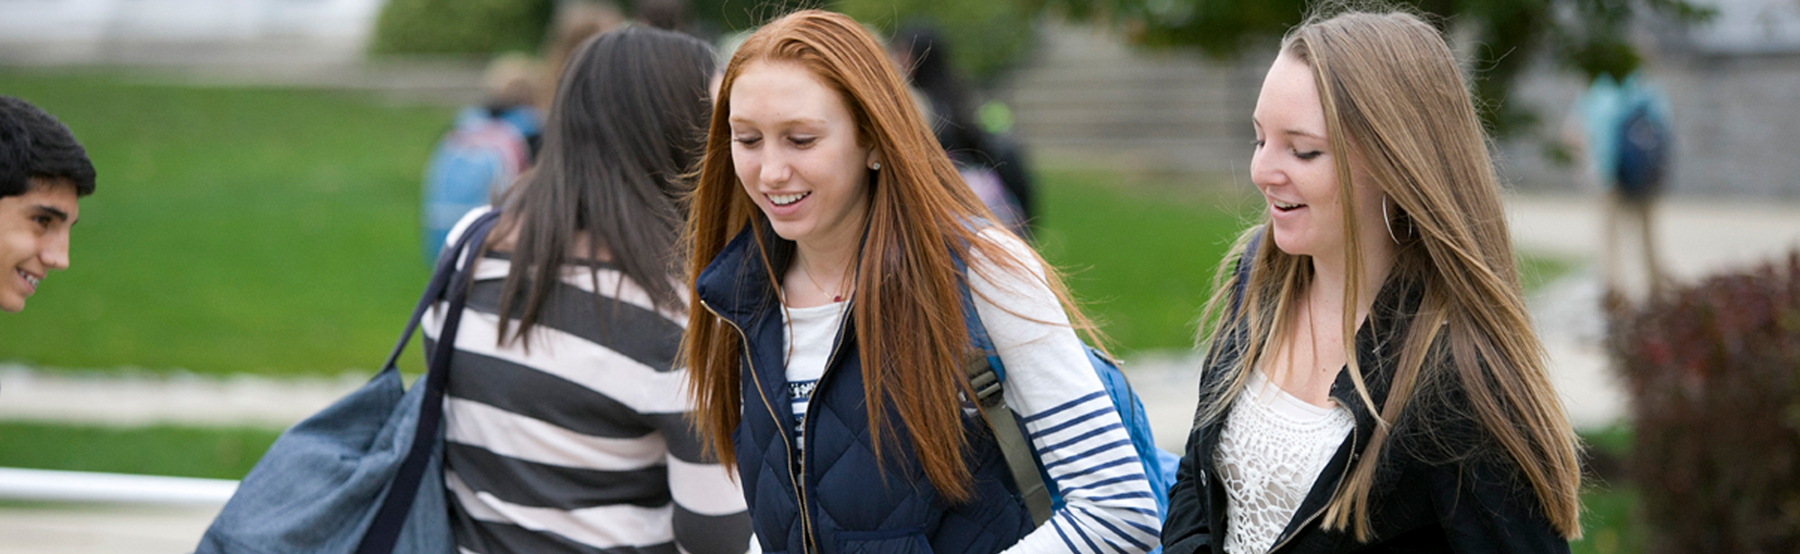 Two female students talking as they walk to class